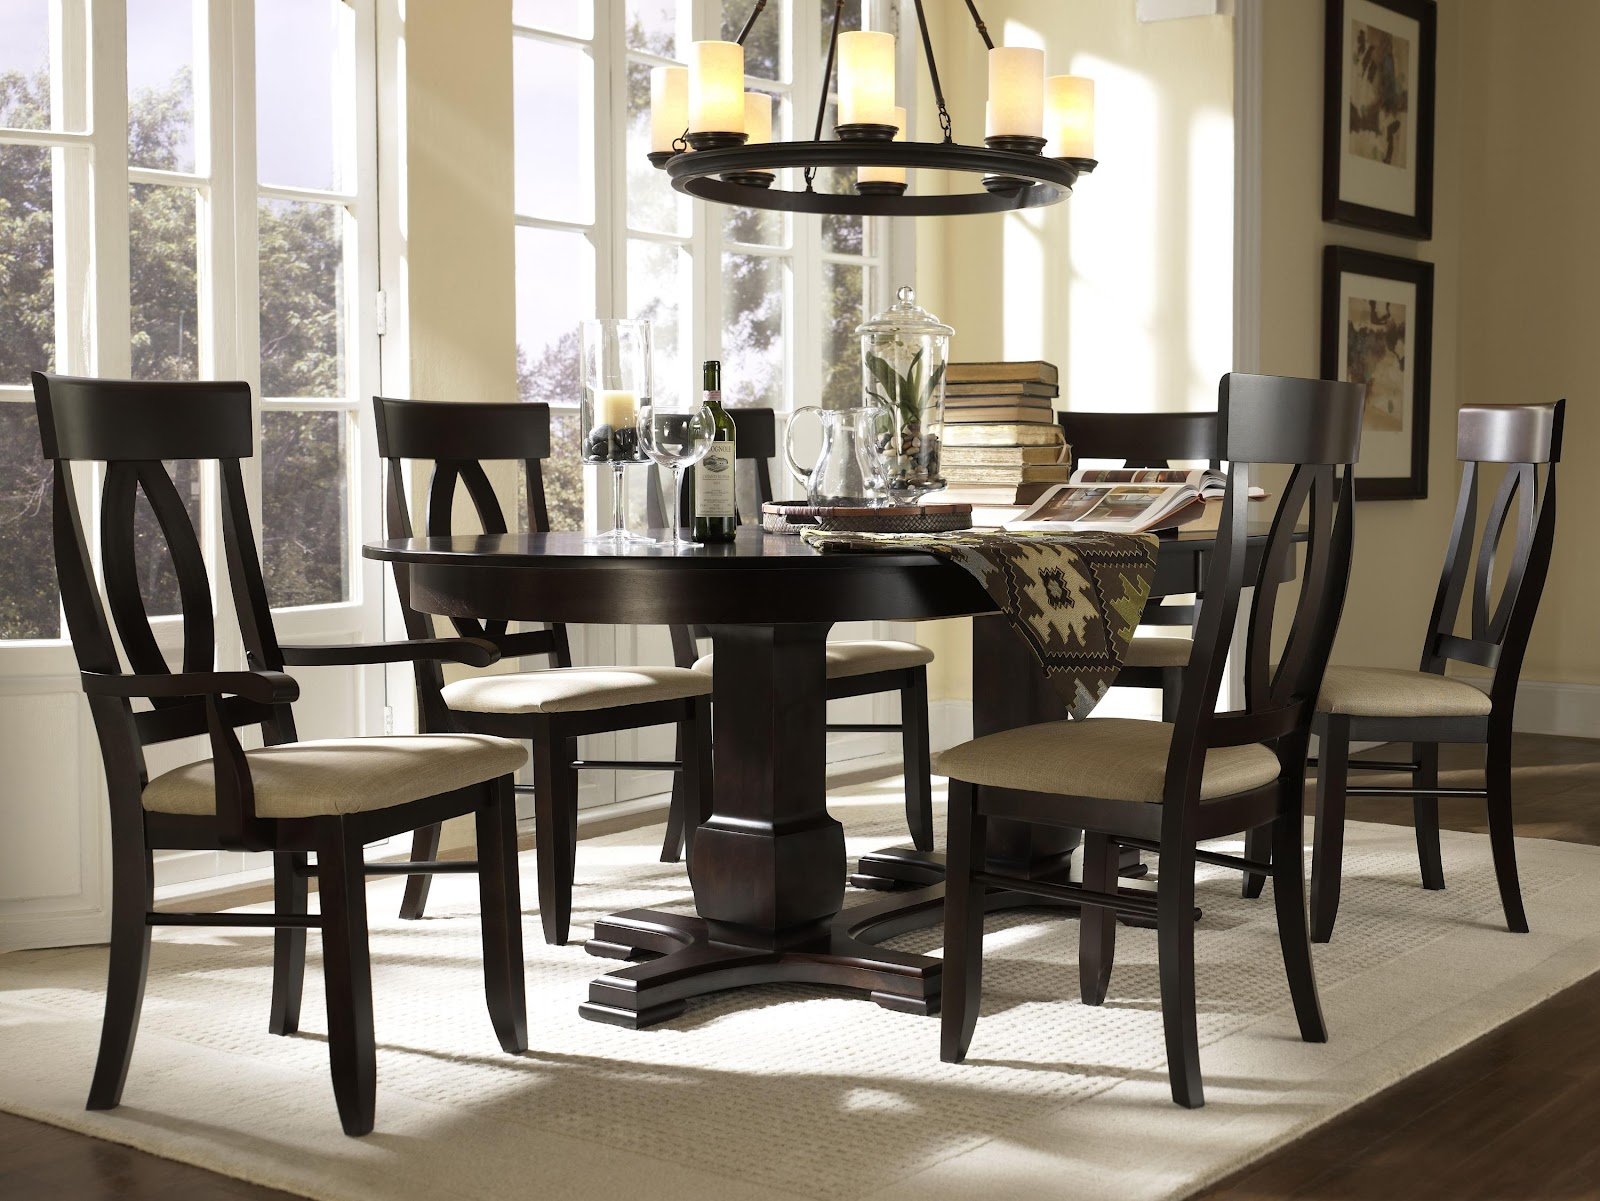 Canadel furniture long island new york ny dining room for Breakfast room sets